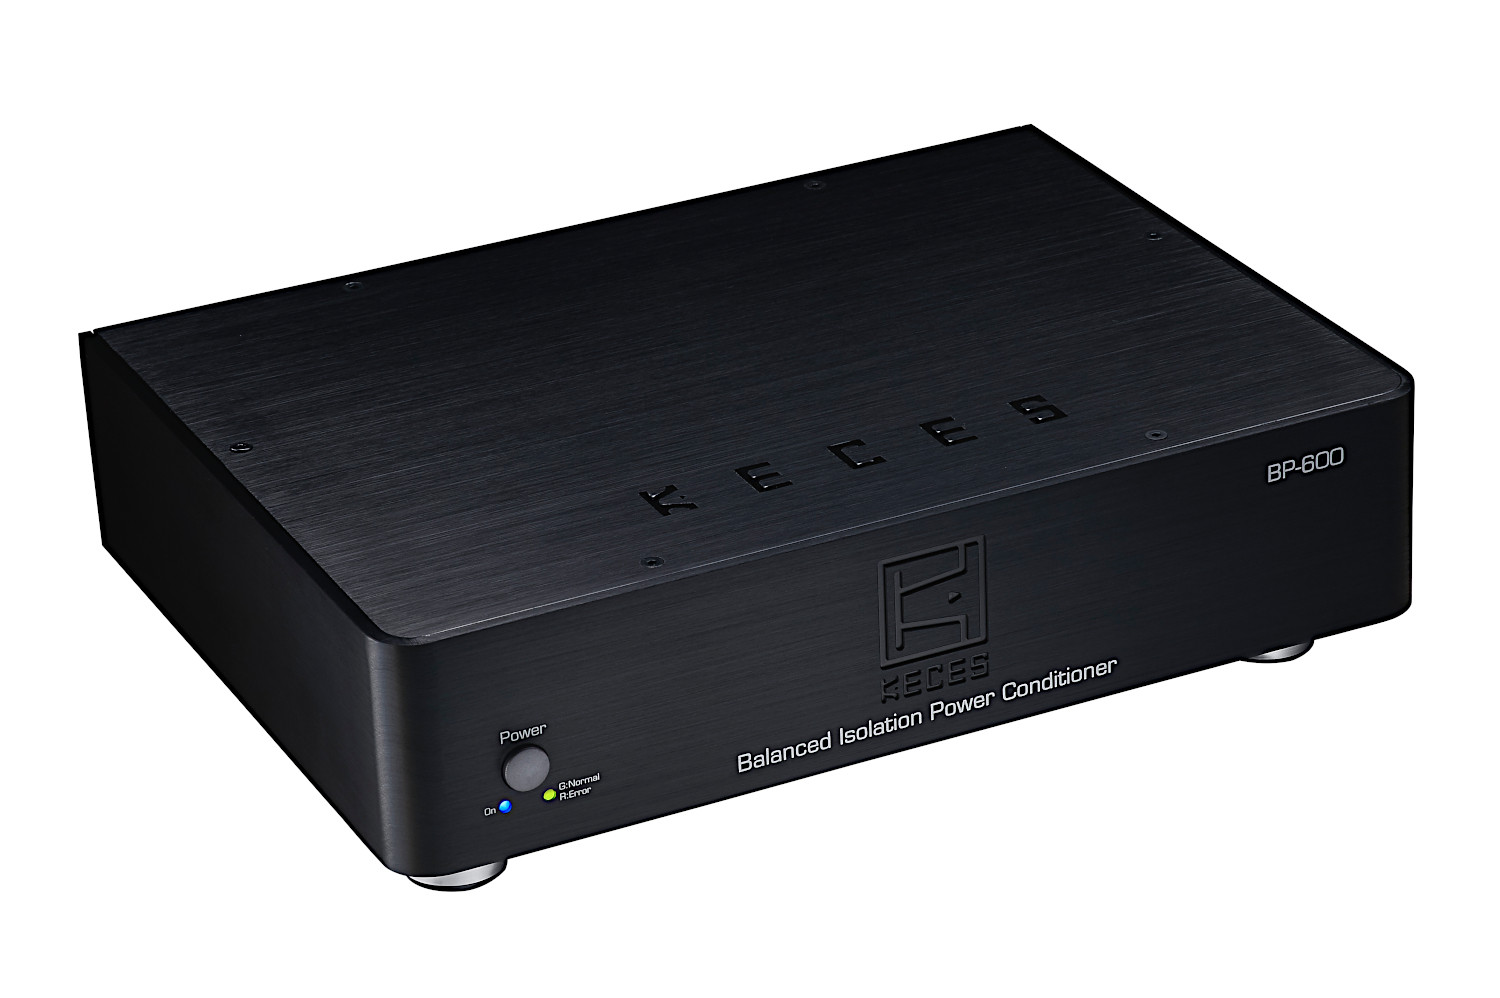 Keces BP600 Balanced Isolation Power Conditioner